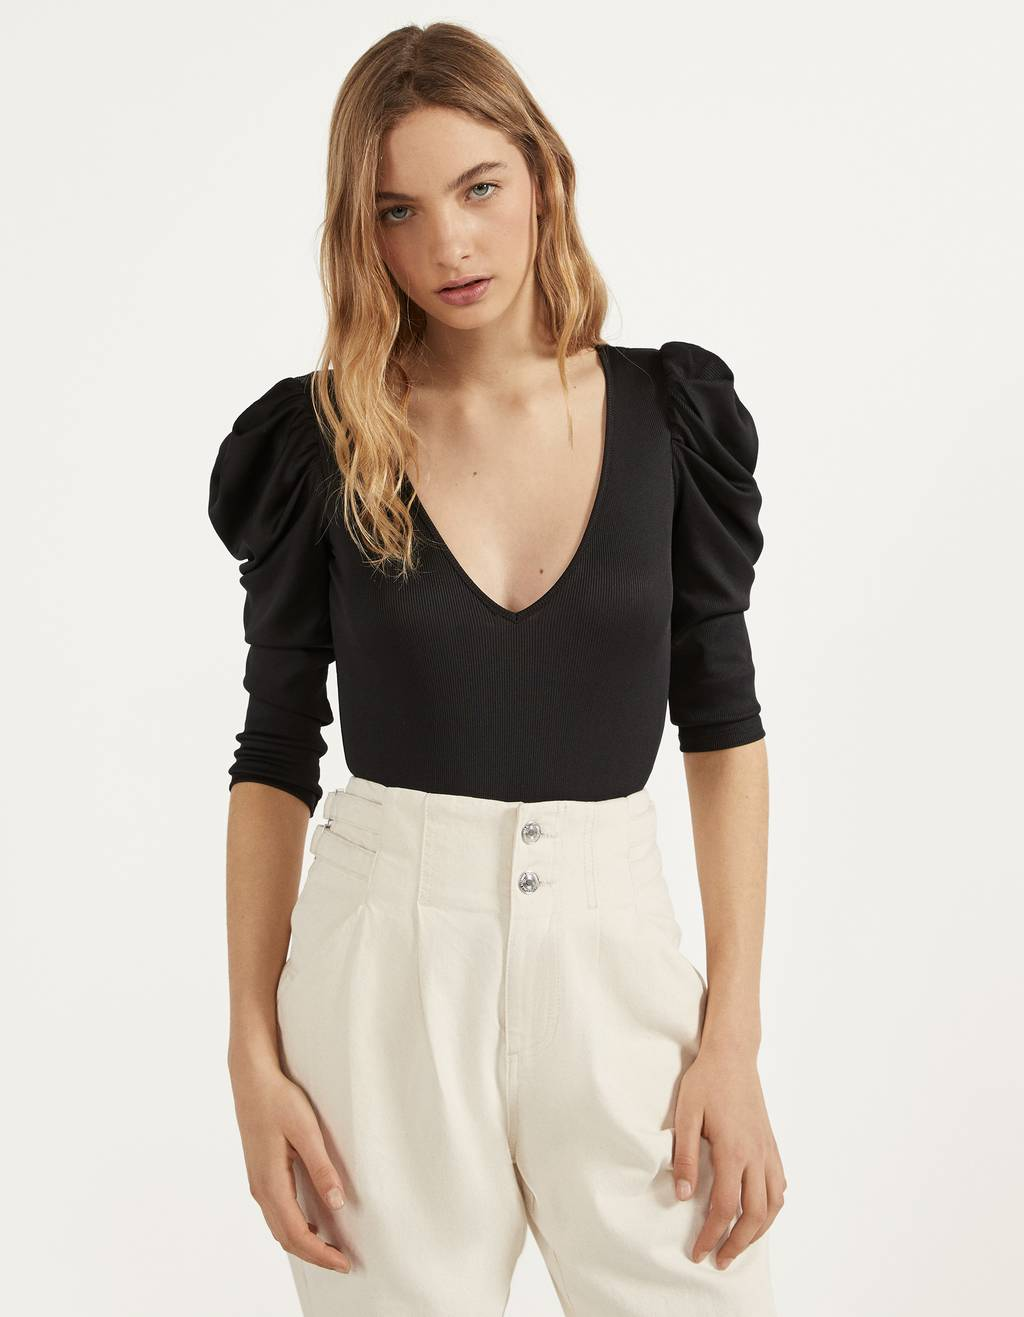 Bodysuit with long full sleeves